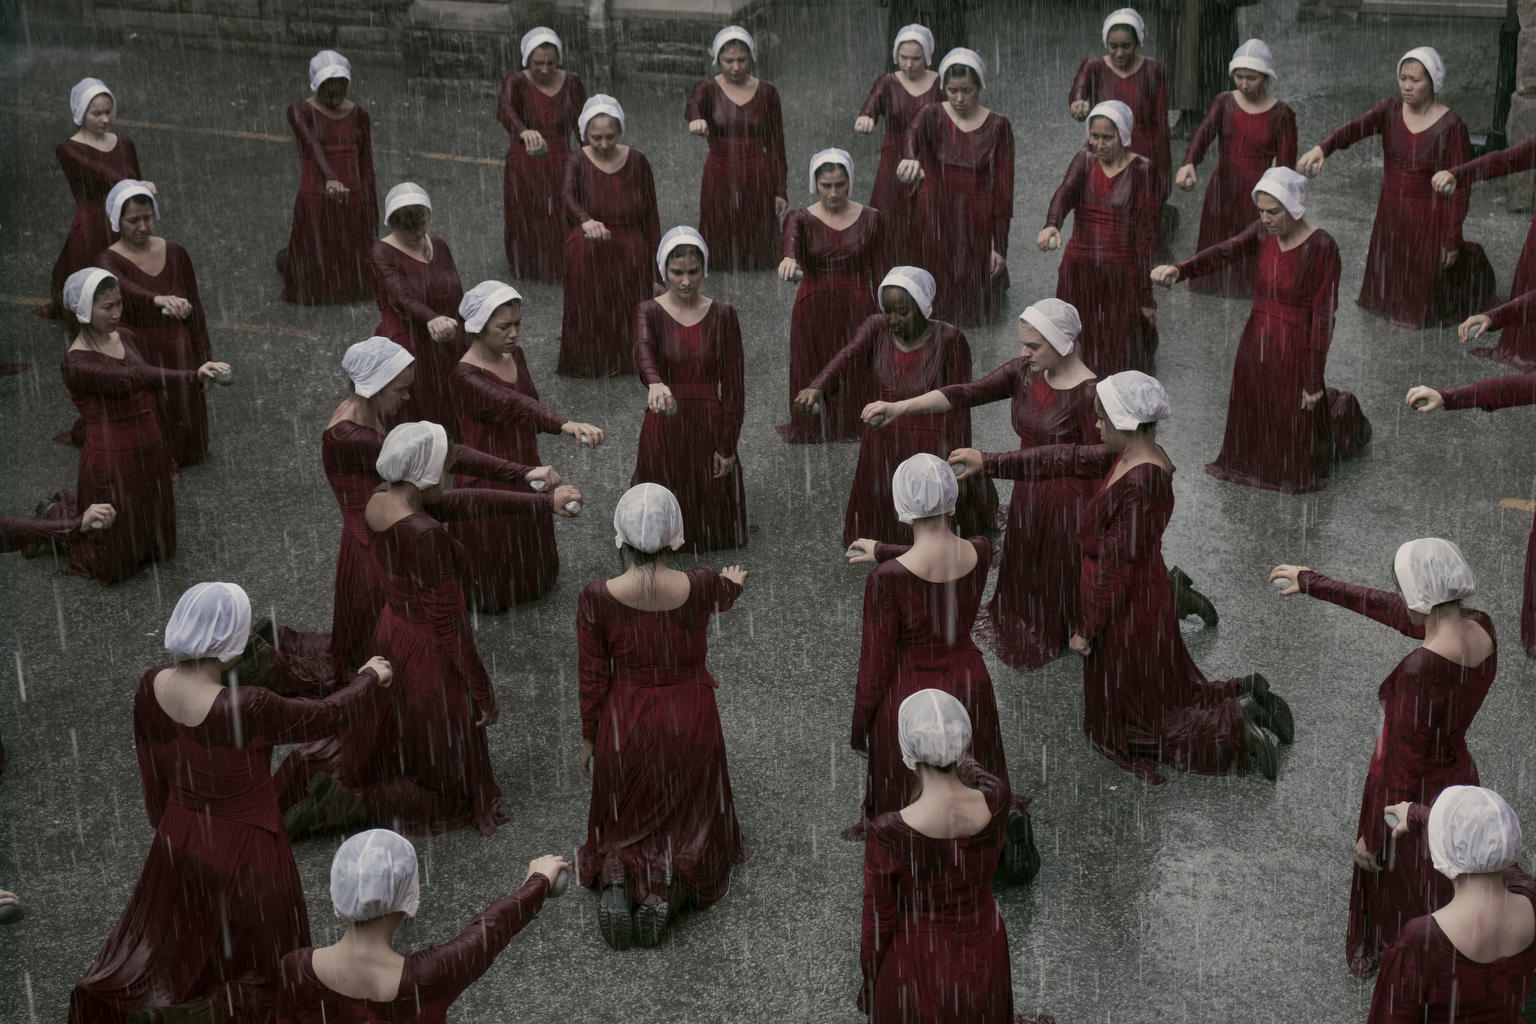 Handmaids gather in the rain in an episode of Hulu's The Handmaid's Tale